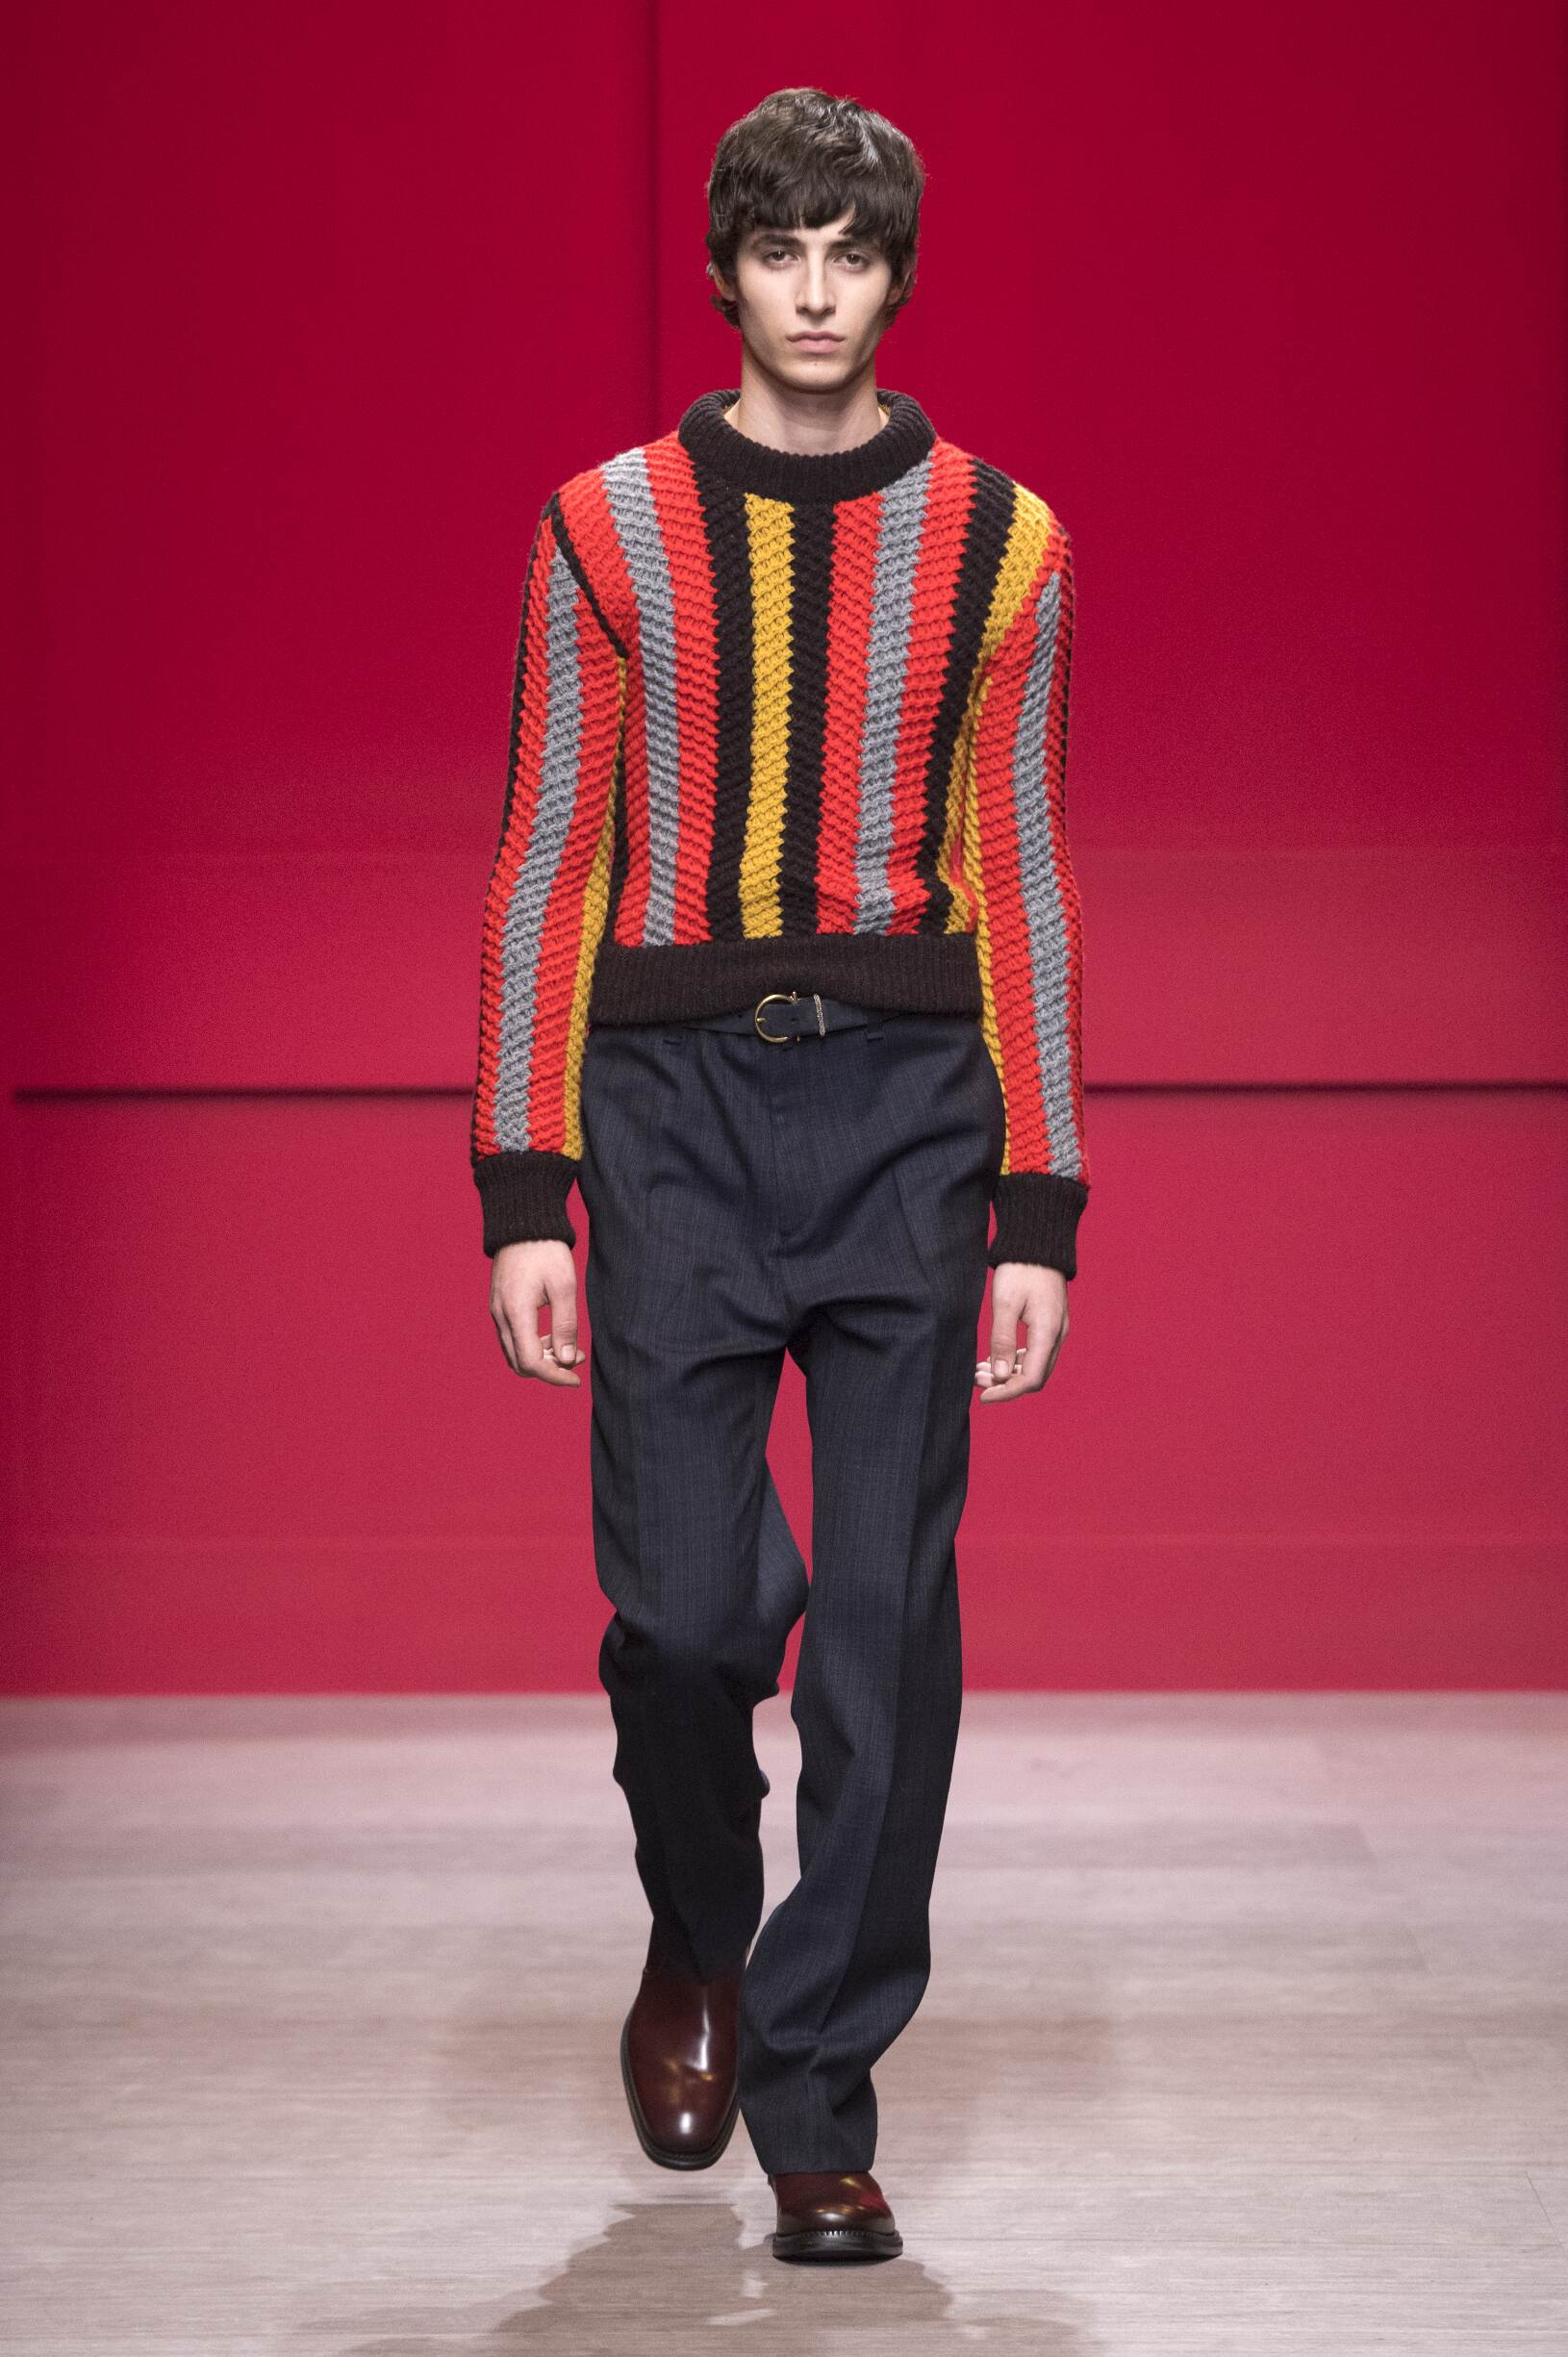 2018 Catwalk Salvatore Ferragamo Man Fashion Show Winter